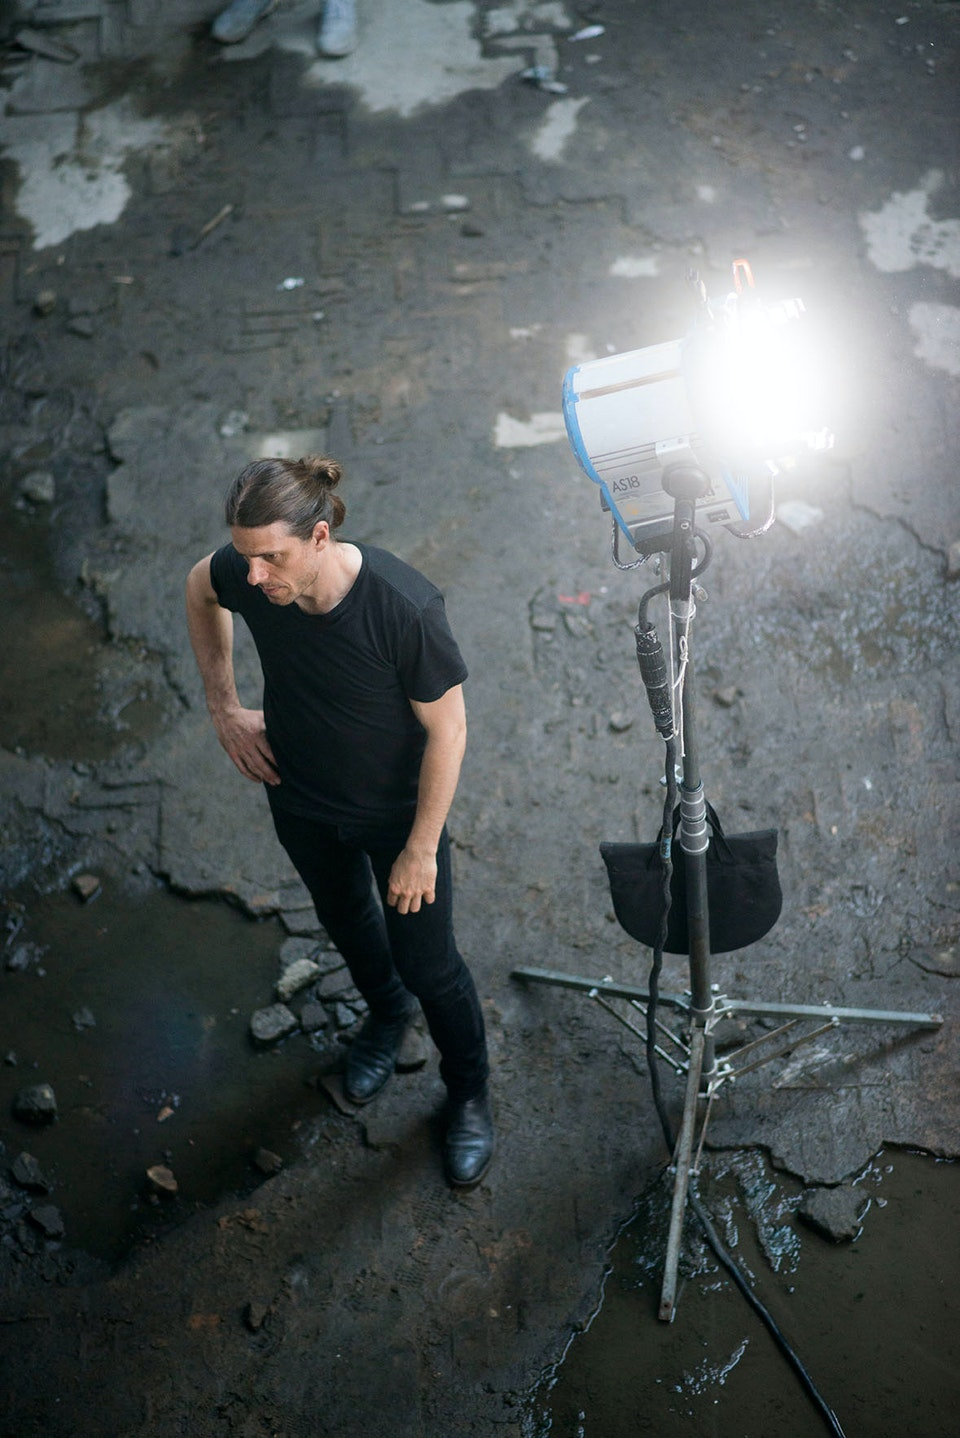 DOP Erik Sohlström on set of XXL in Rio. Photo ©Miguel Blanc/Southwest